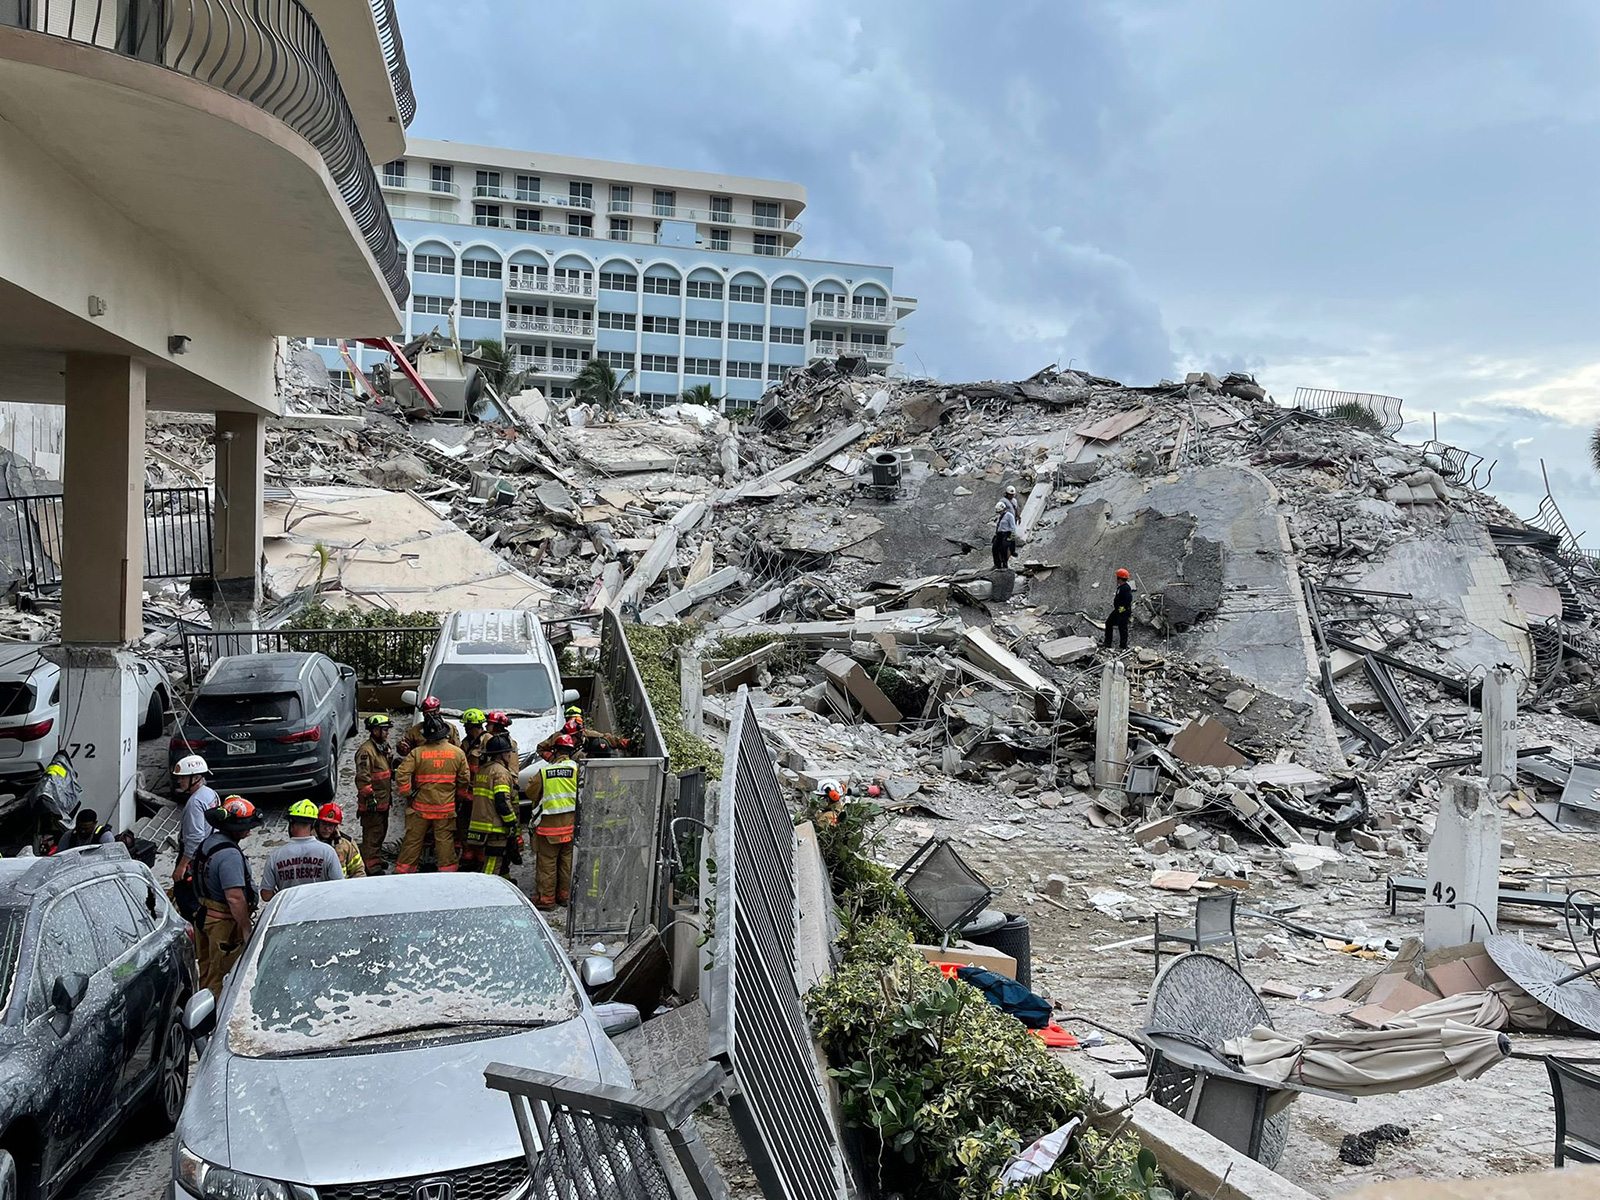 Condo residents saw pool deck and garage collapse before tower crumbled to the ground